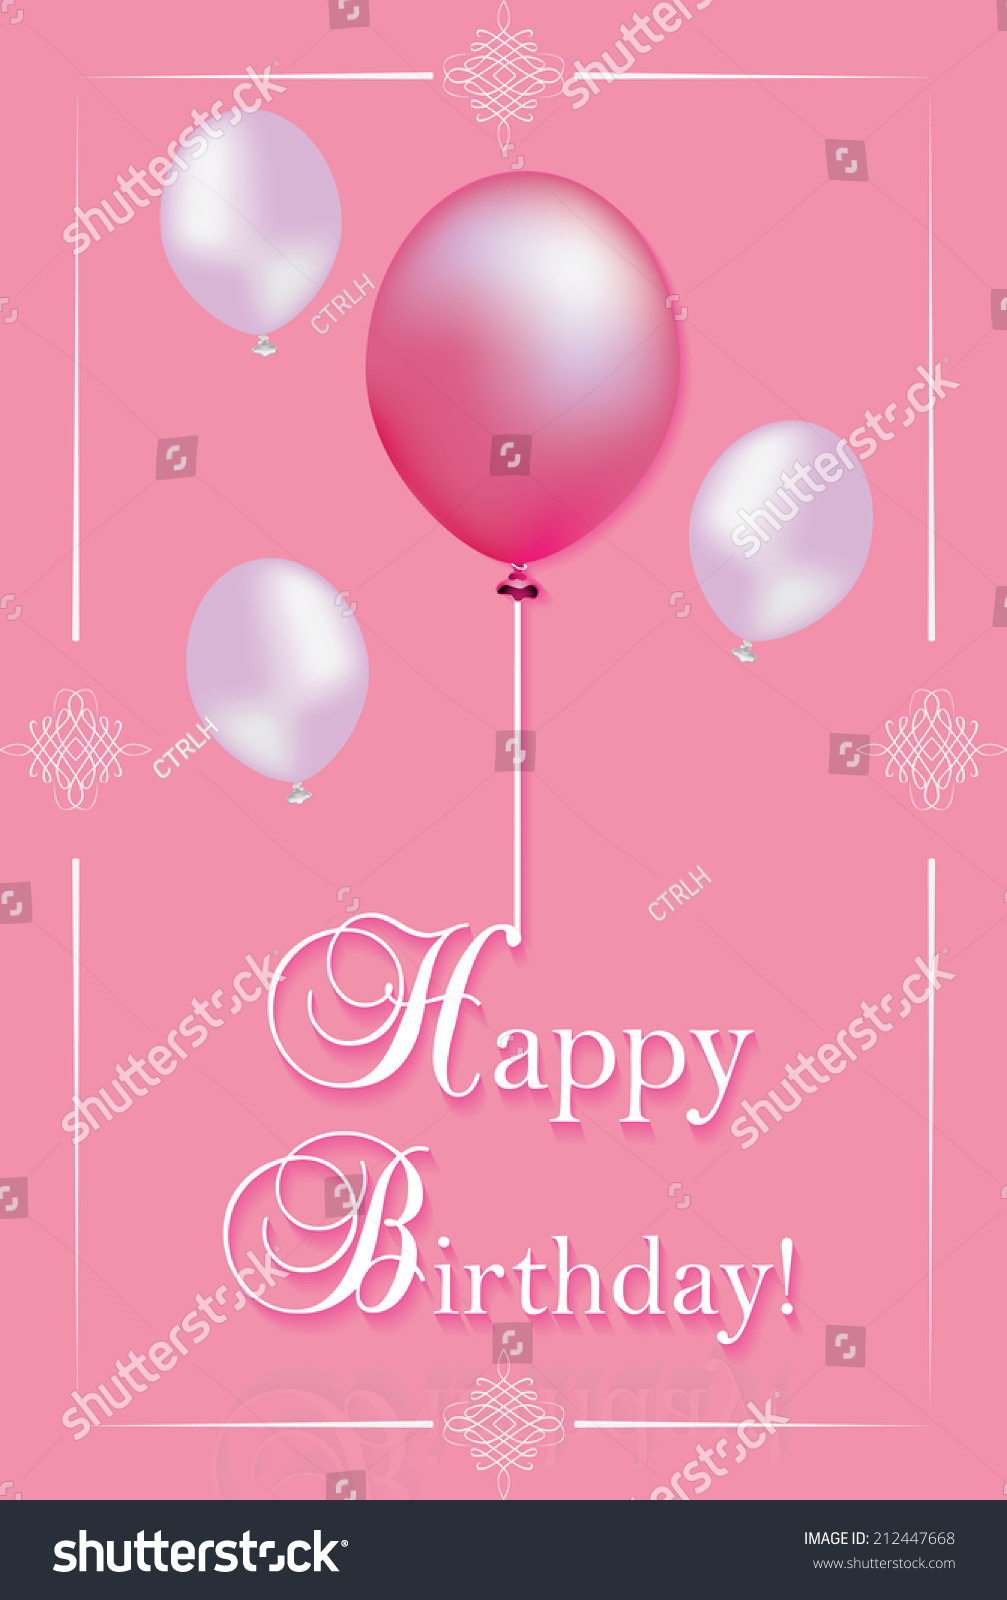 Pink birthday card print printable birthday stock vector 212447668 pink birthday card for print printable birthday greeting card with balloons and text decorations kristyandbryce Gallery